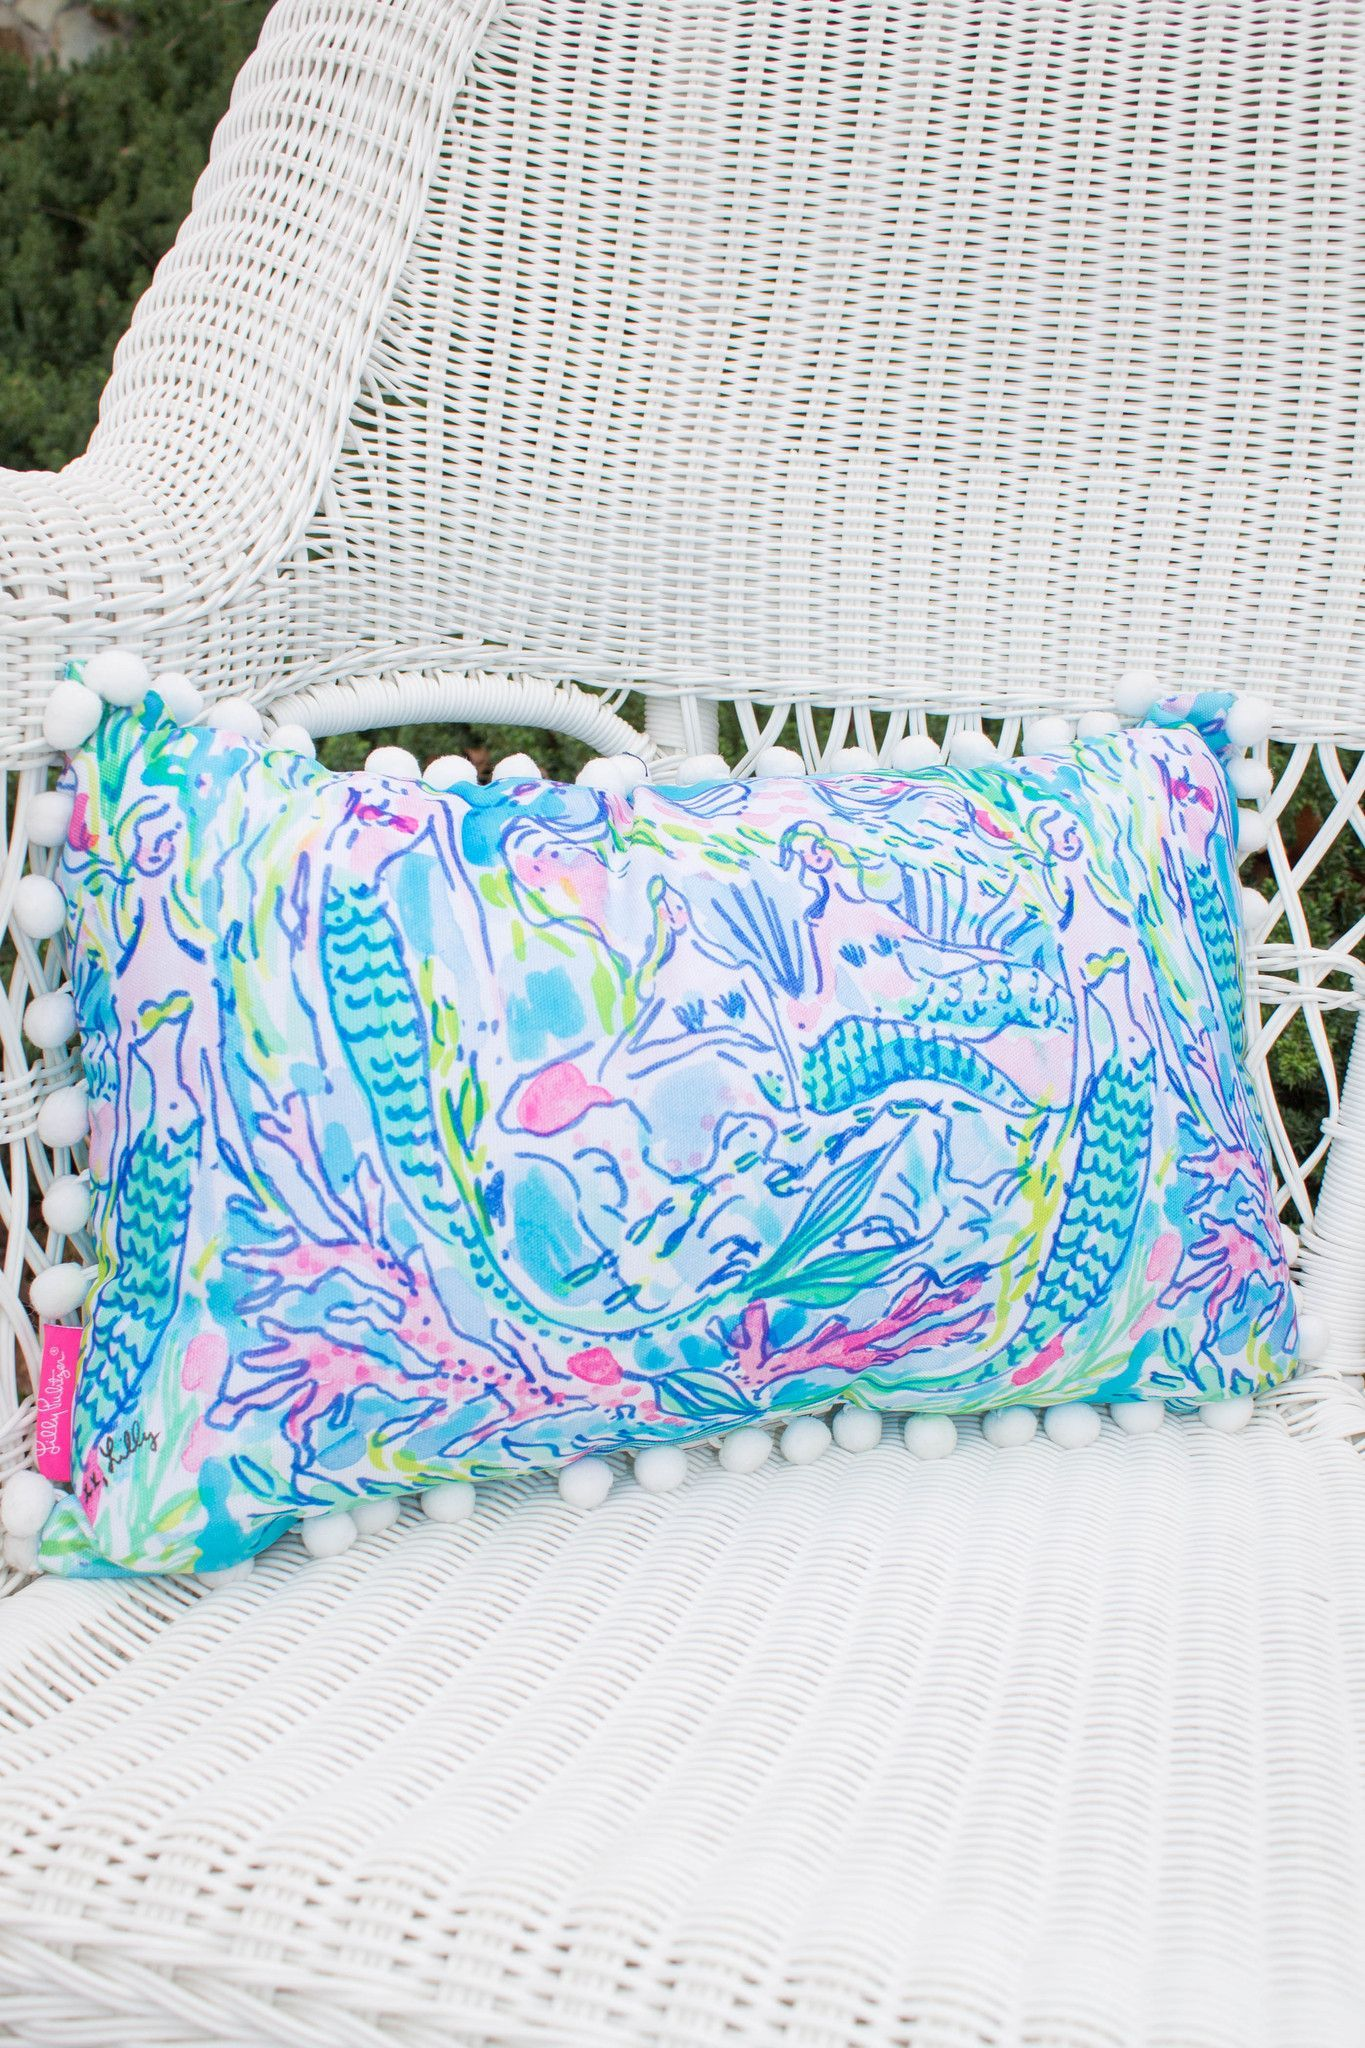 Preppy Lilly Pulitzer mermaid pillow is going to look so cute in your bedroom or on your front porch rocking chair! Perfect pillow for any Lilly lover. Pillow is framed with fun white pom-poms. Weathe